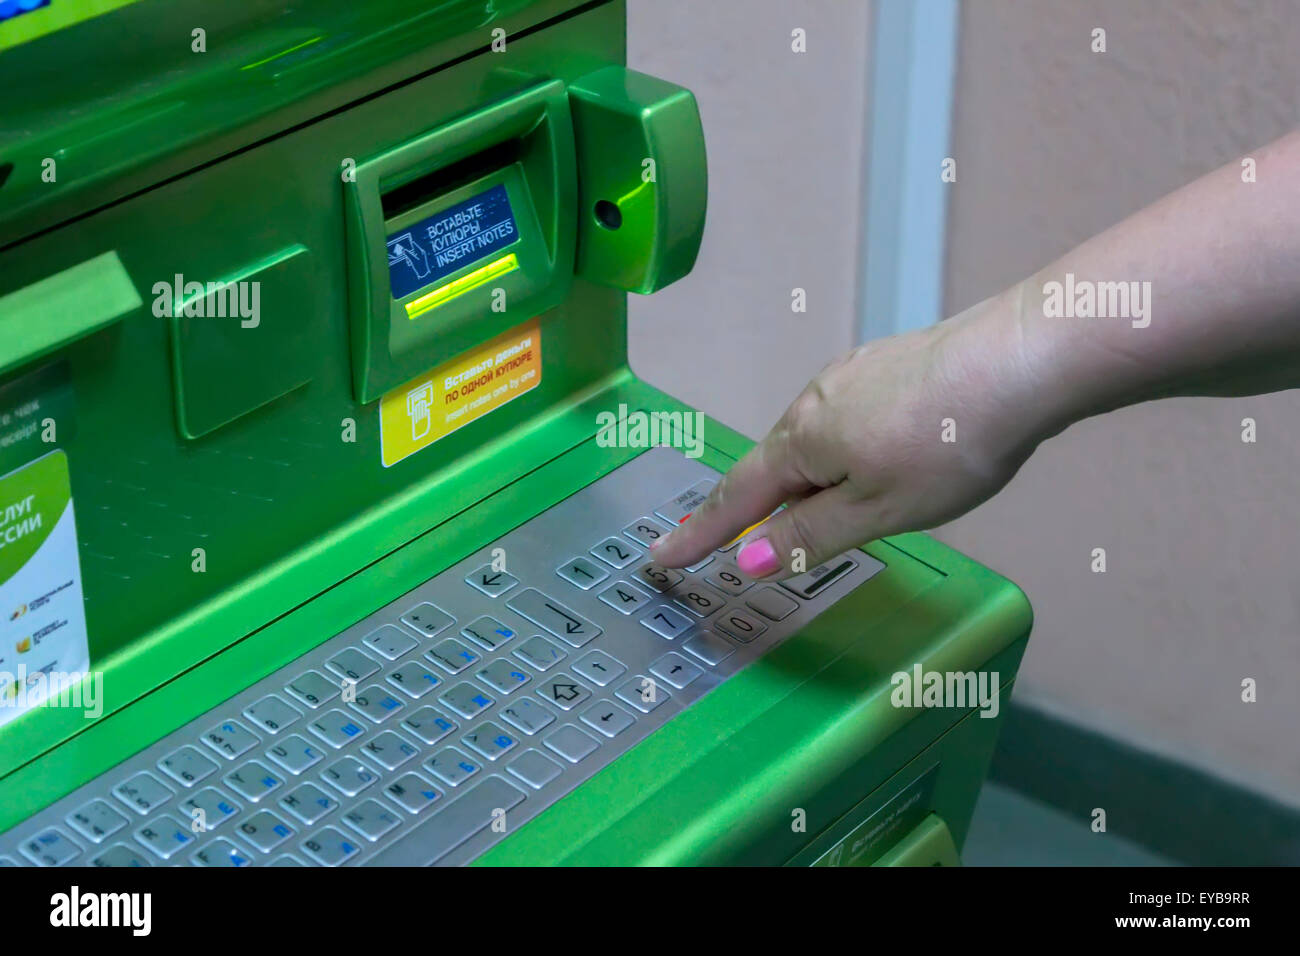 The hand of man (woman) is gaining PIN code on the keypad of the ATM terminal Stock Photo